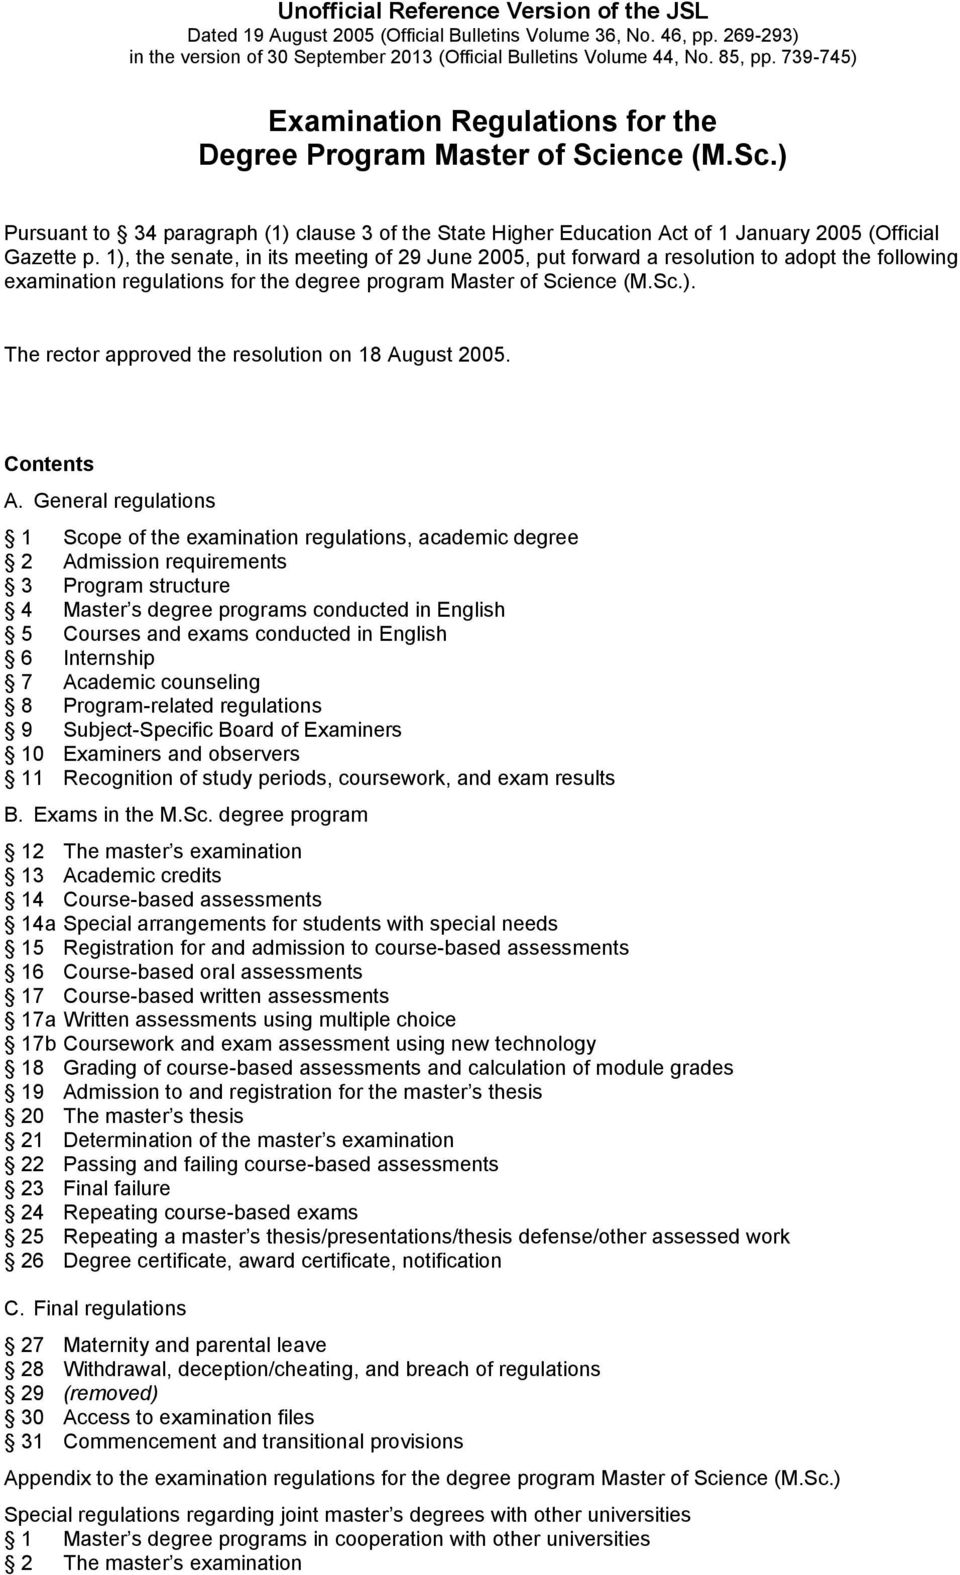 1), the senate, in its meeting of 29 June 2005, put forward a resolution to adopt the following examination regulations for the degree program Master of Science (M.Sc.). The rector approved the resolution on 18 August 2005.